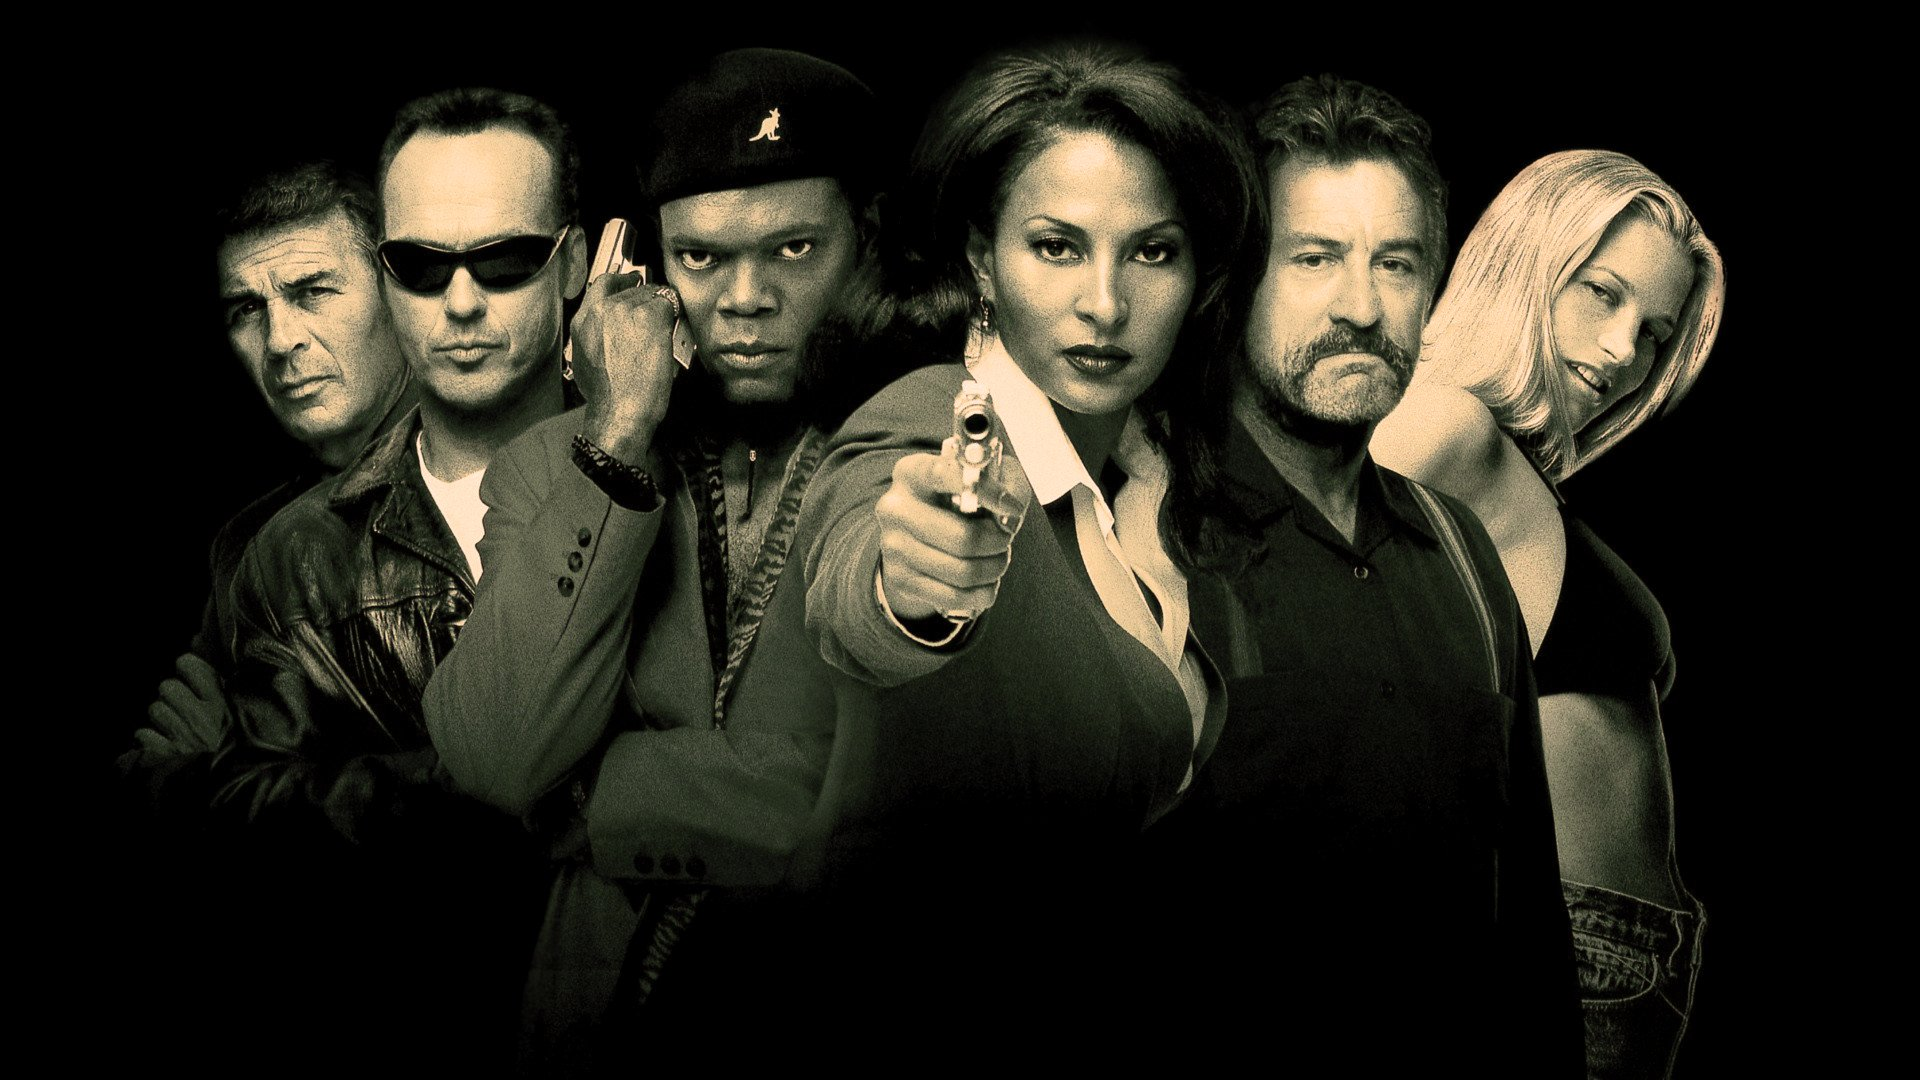 Jackie Brown HD Wallpaper | Sfondo | 1920x1080 | ID:804991 - Wallpaper Abyss